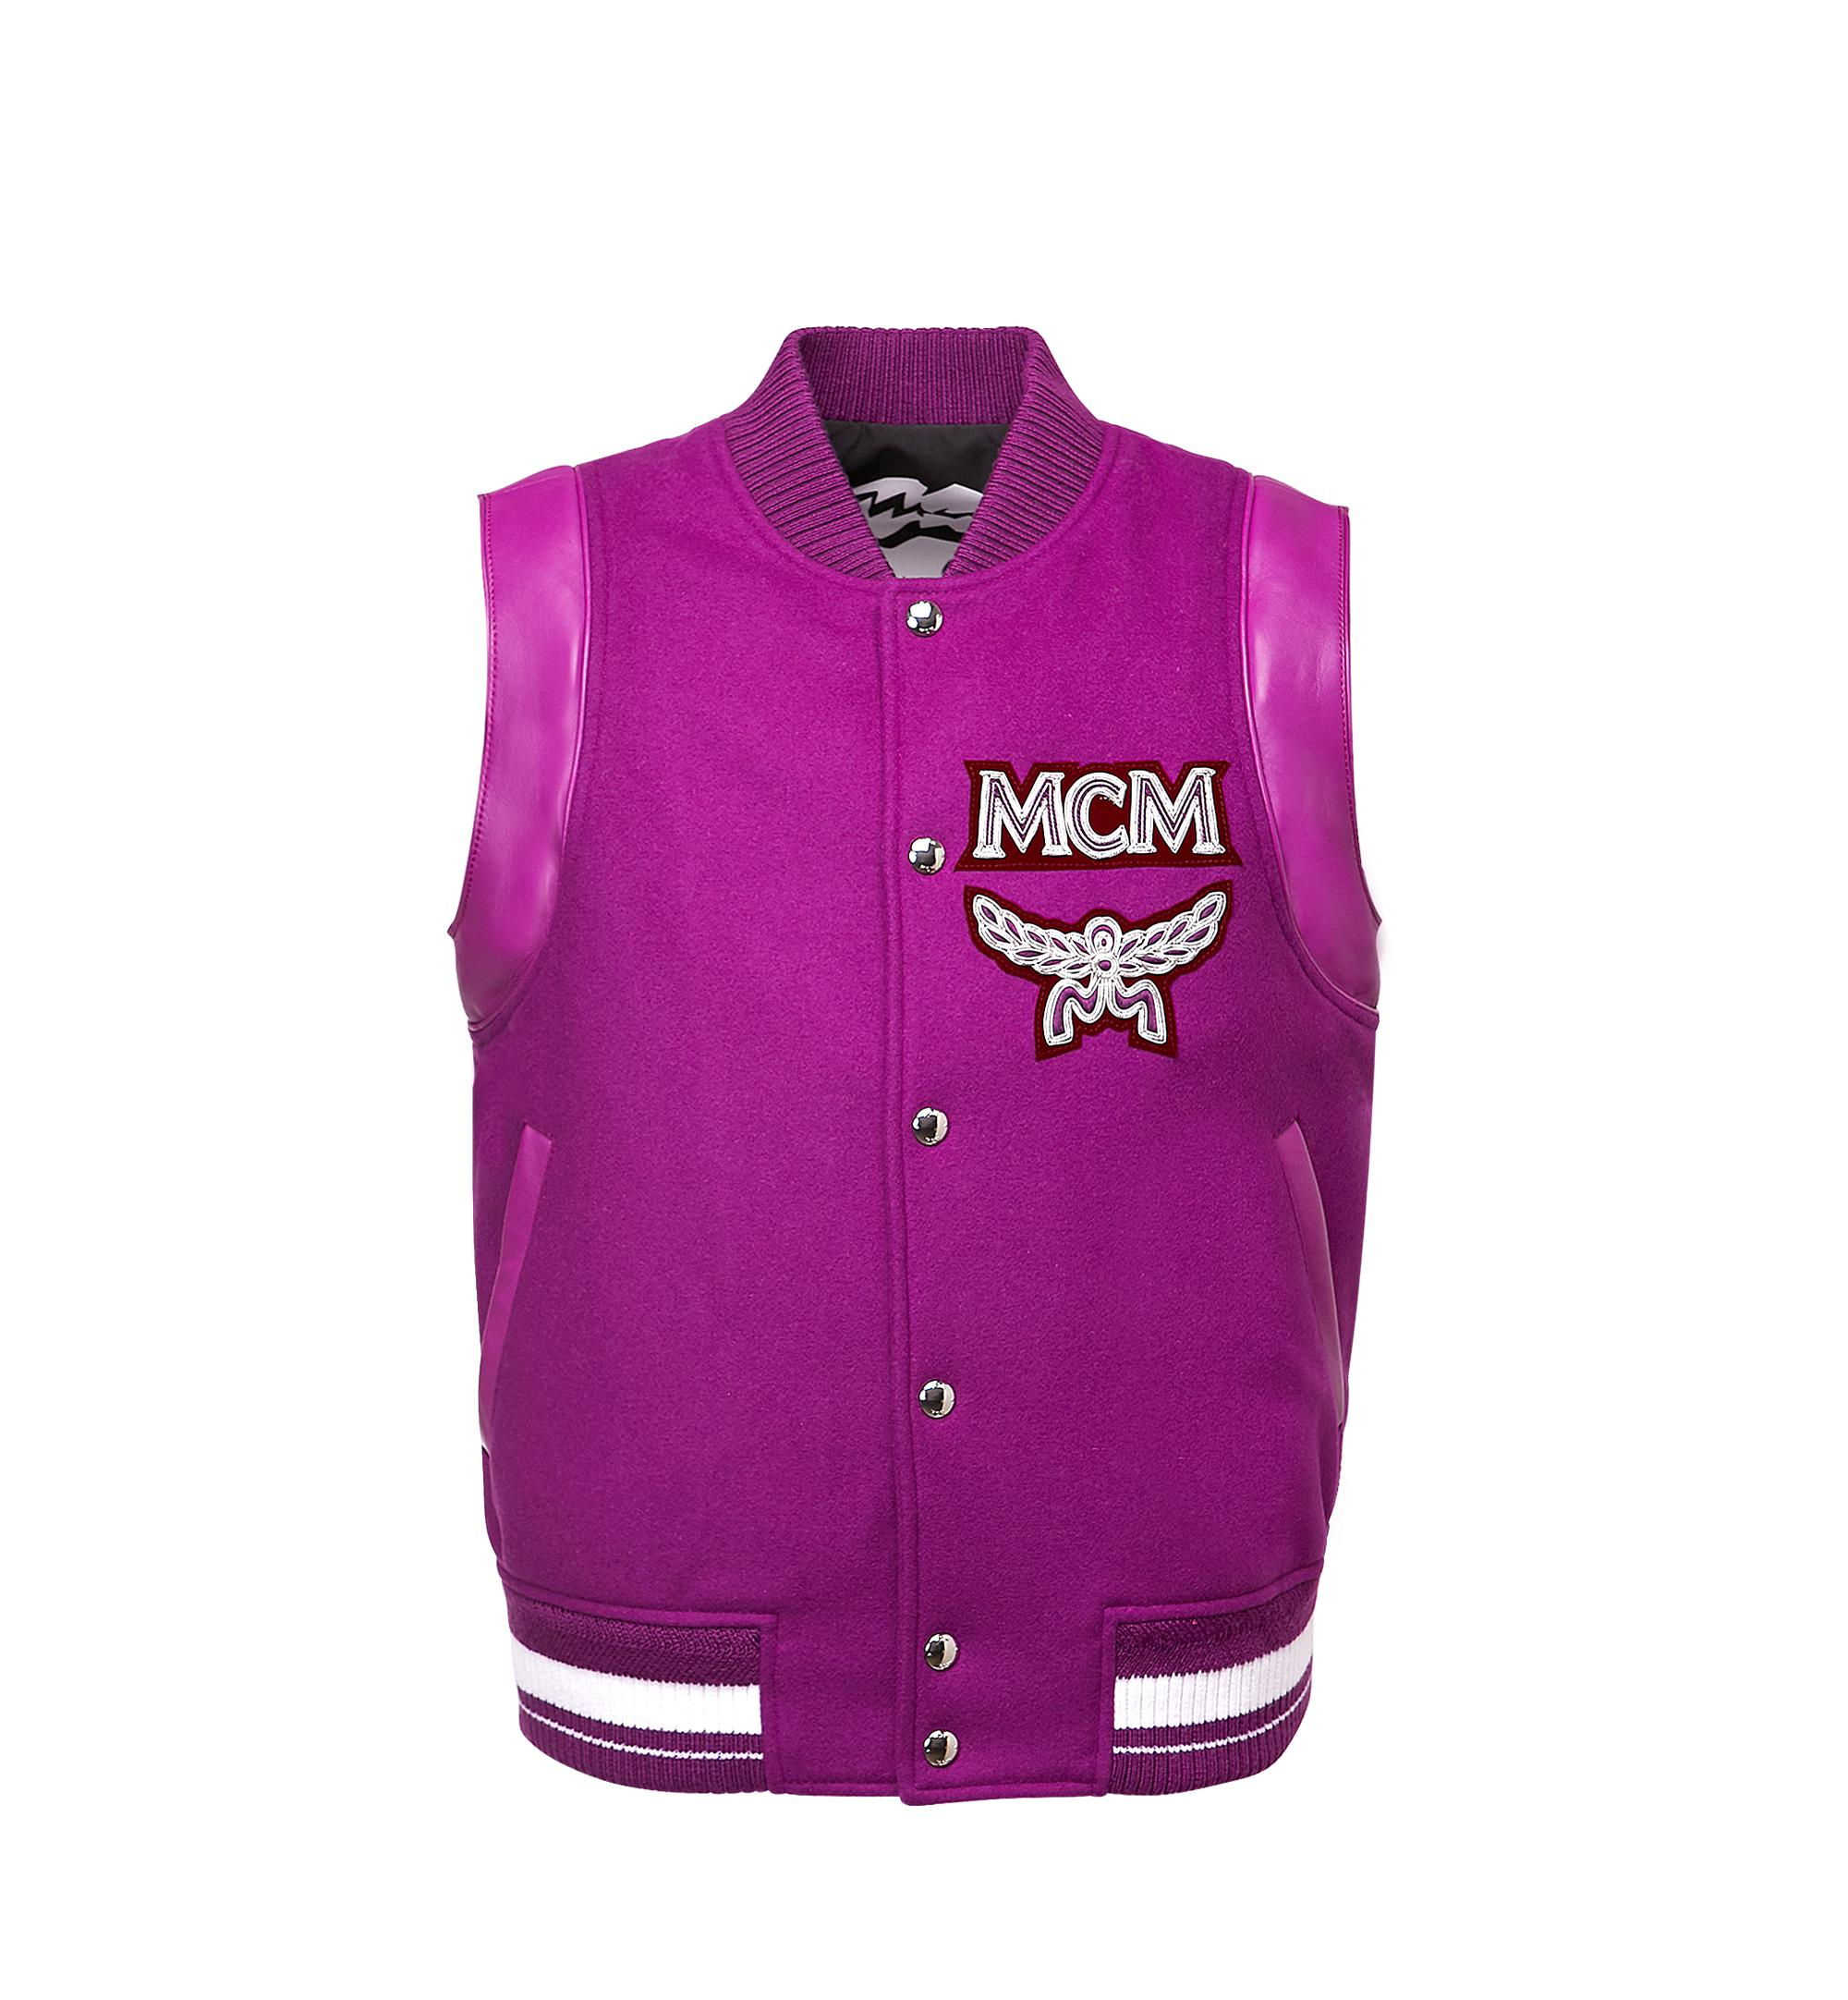 MCM Wool Stadium Jacket in Purple for Men